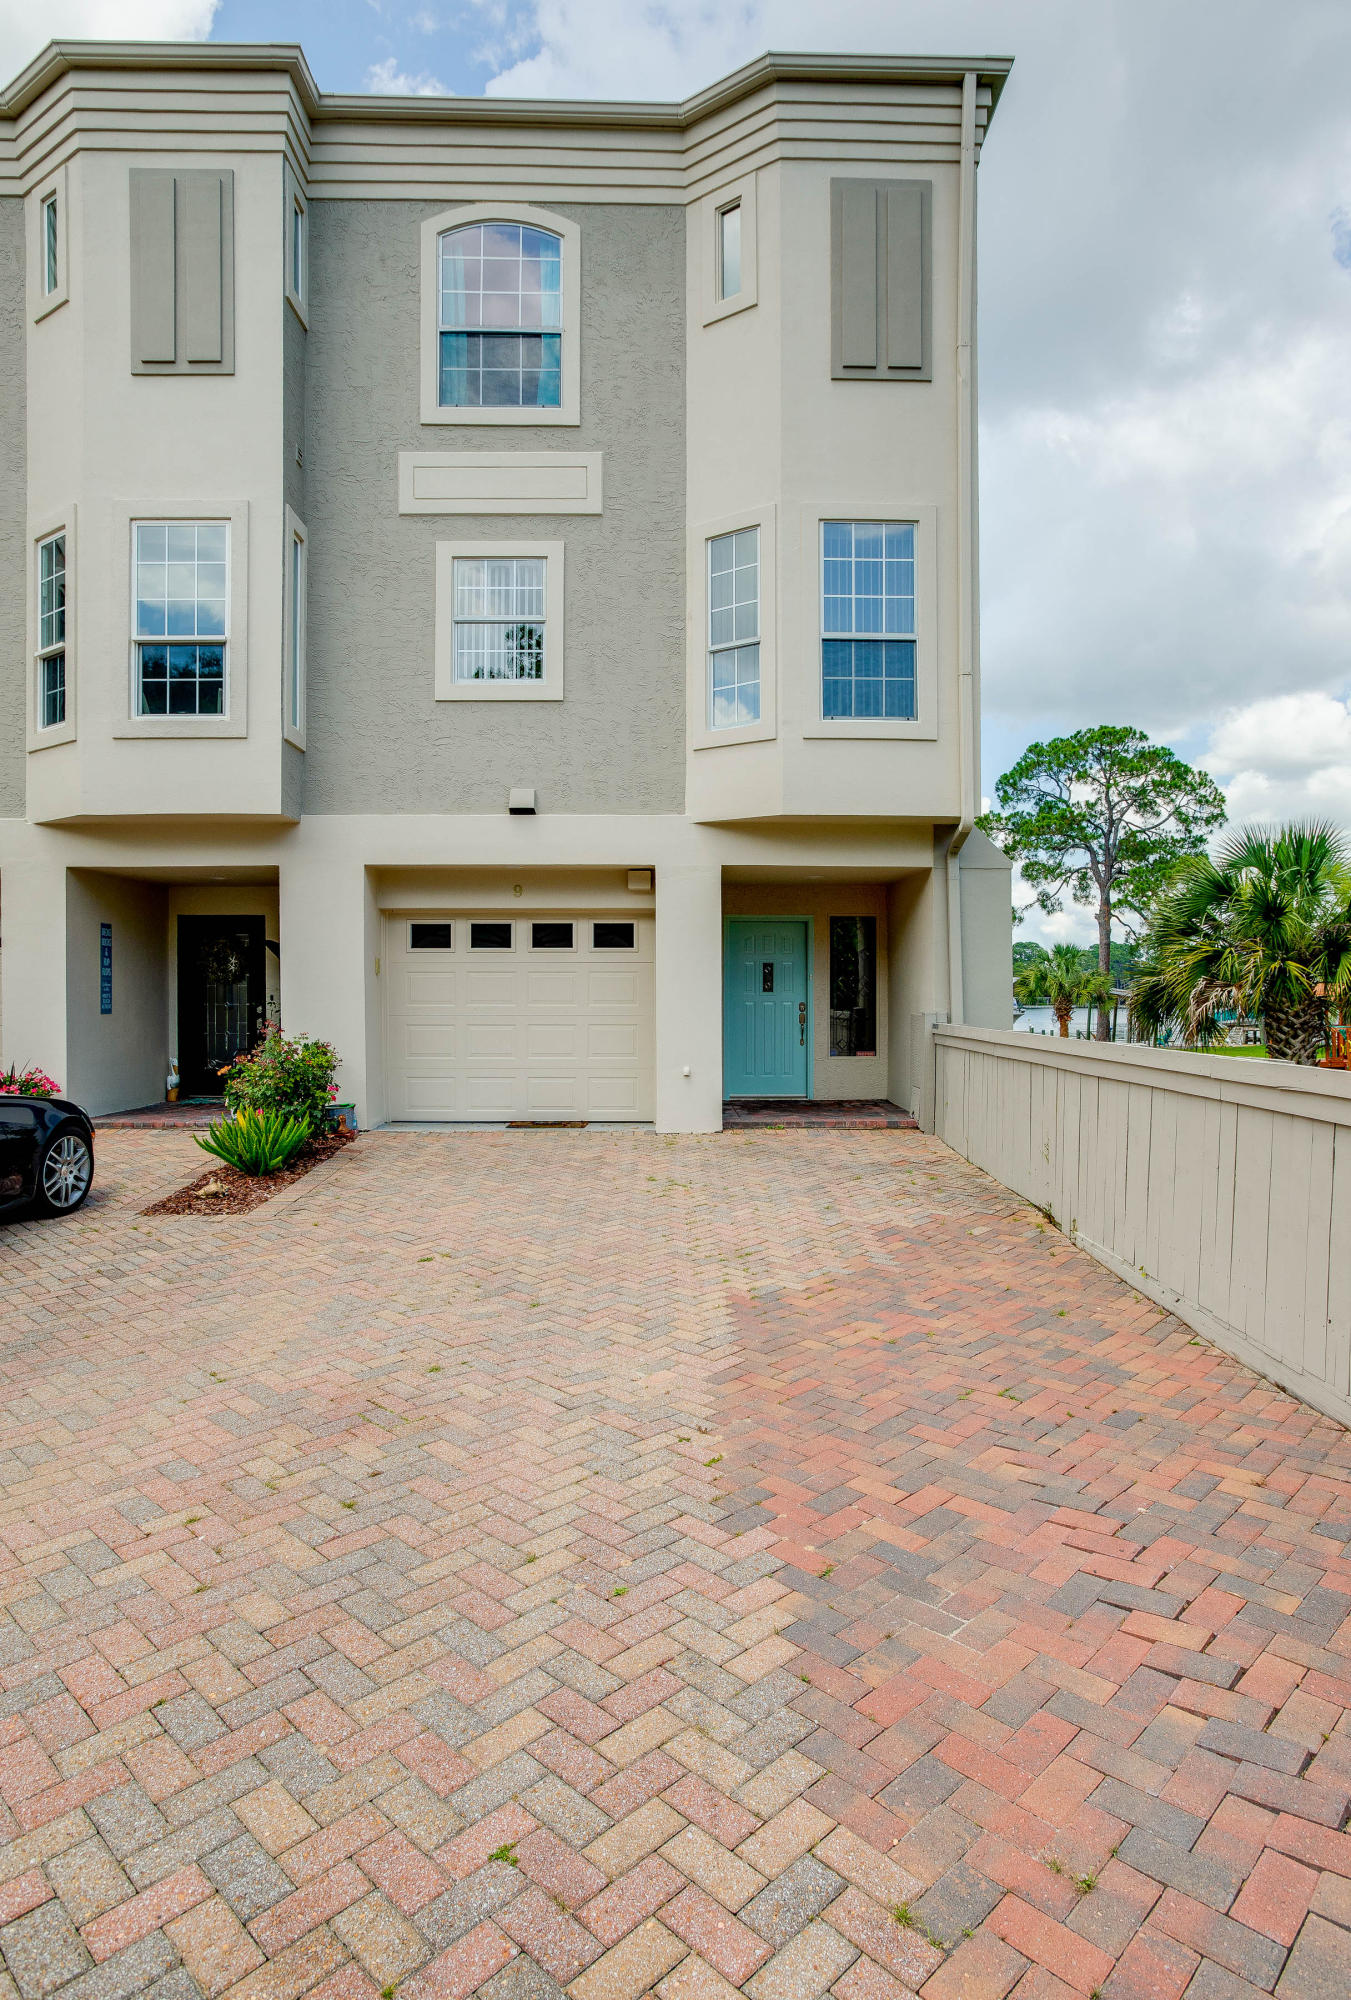 Massively updated 3/3.5, 2,970 sf waterfronttownhome located on prestigious Yacht Club Dr. in the heart of Ft. Walton Beach. Moorings features a paver entry-way shaded by huge trees and well-maintained lawns. The large backyard lawn overlooks Cinco Bayou. This end-unit townhome offers water views from back and side and conveys with a boat slip (lift installed) and jet-ski lift. Entry-level first floor has a private guest-suite, covered porch, storage area, and one-car garage. 2nd floor contains huge living/dining area, large covered balcony, totally updated kitchen, and powder room with 12' ceilings. The huge Master offers sweeping water-views and completely updated ensuite master bath, separate laundry room and 3rd BR (with private bath) are on the 3rd level.